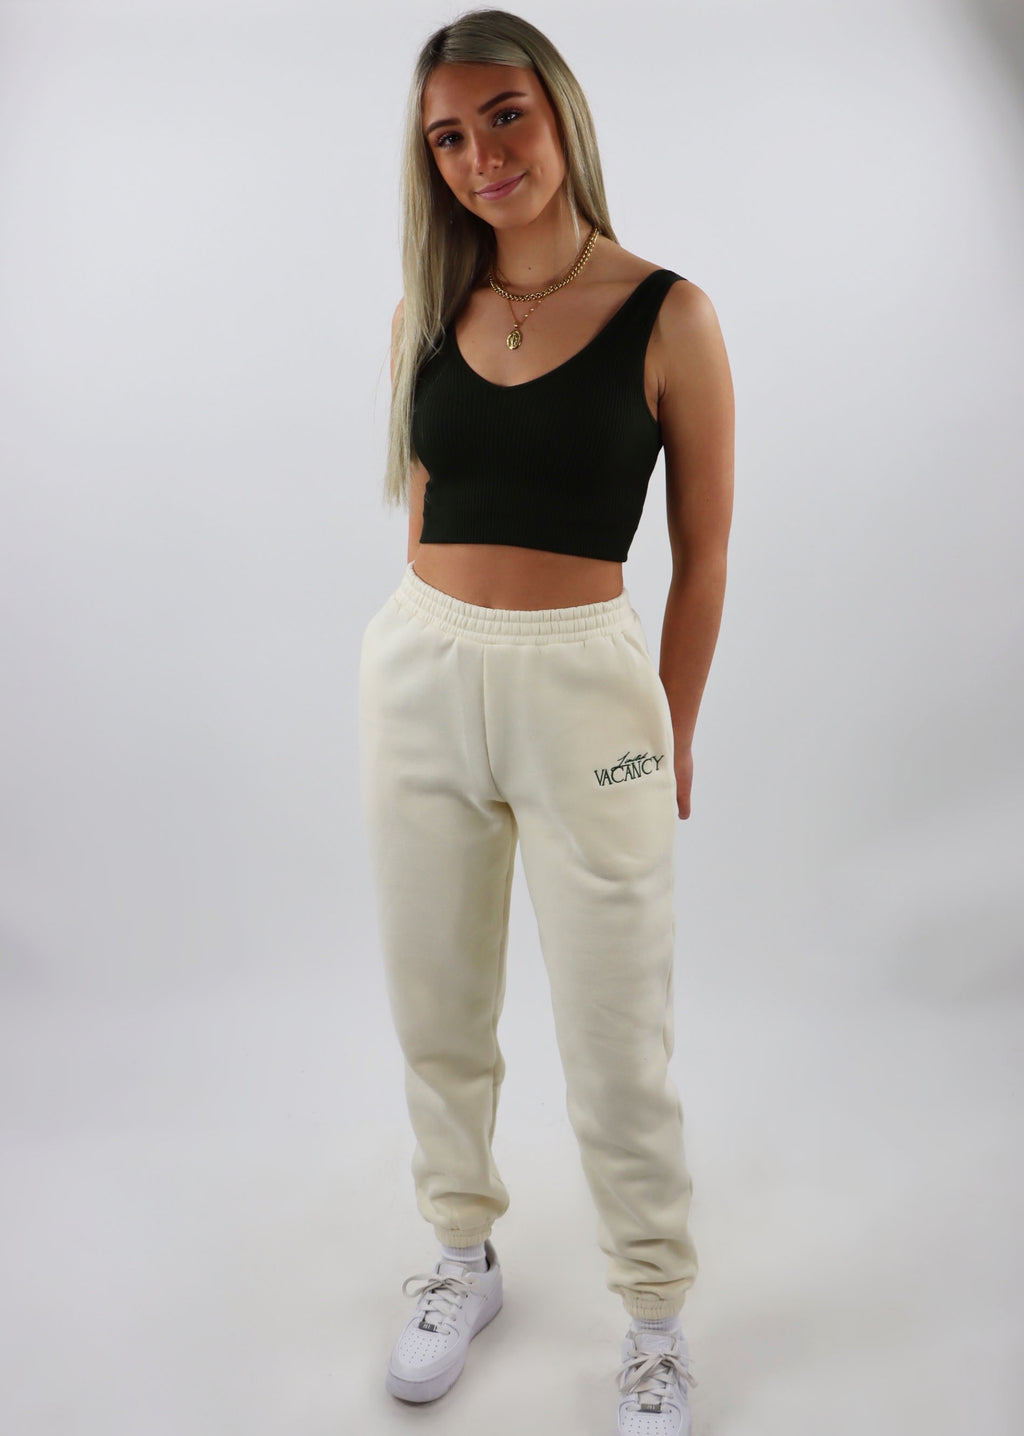 Boulevard Sweatpants ★ Butter